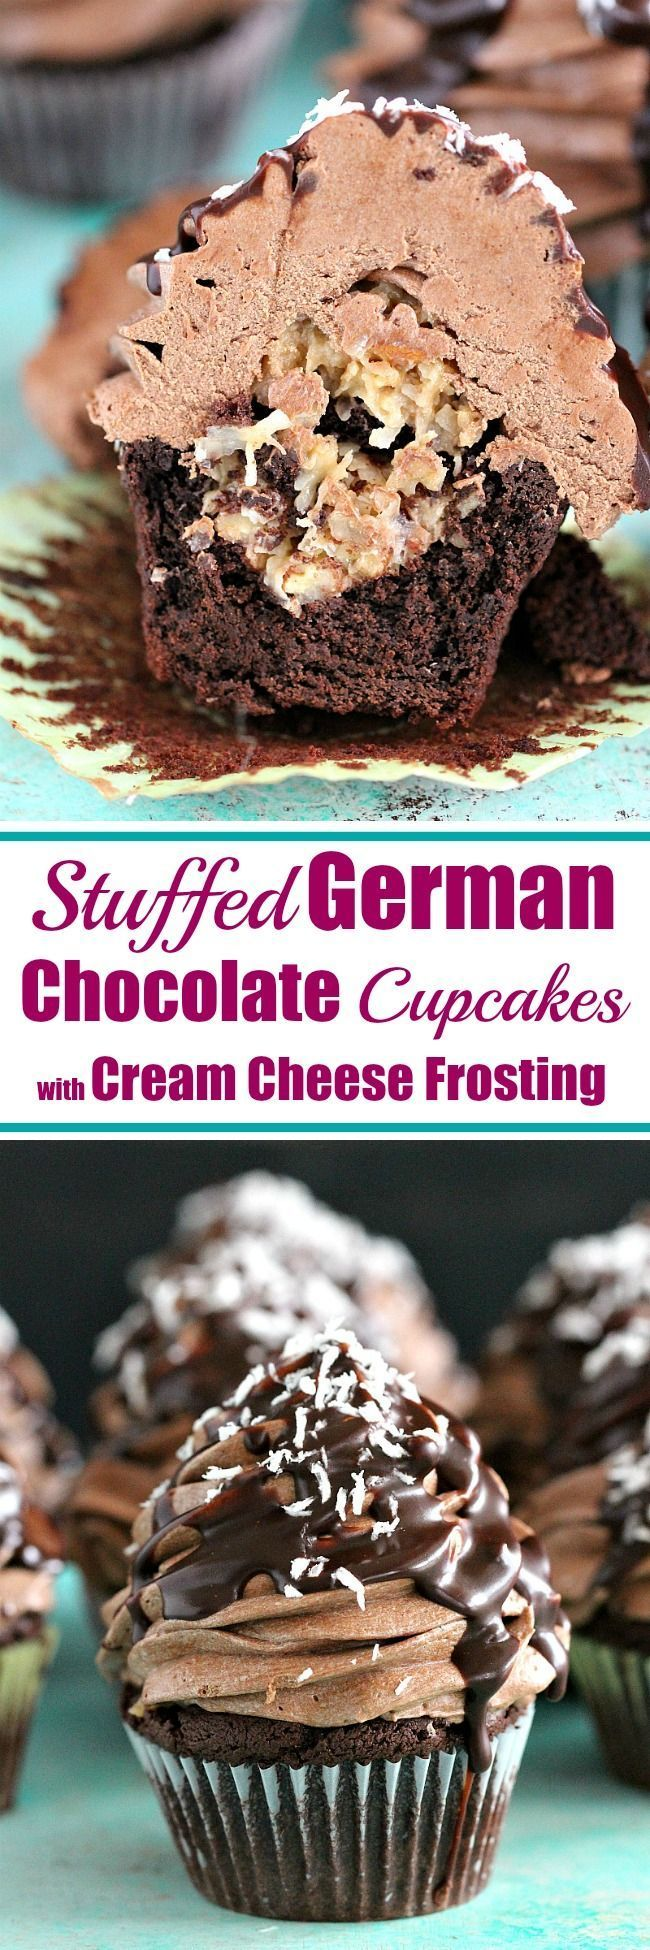 Top 25+ best German chocolate ideas on Pinterest | German ...